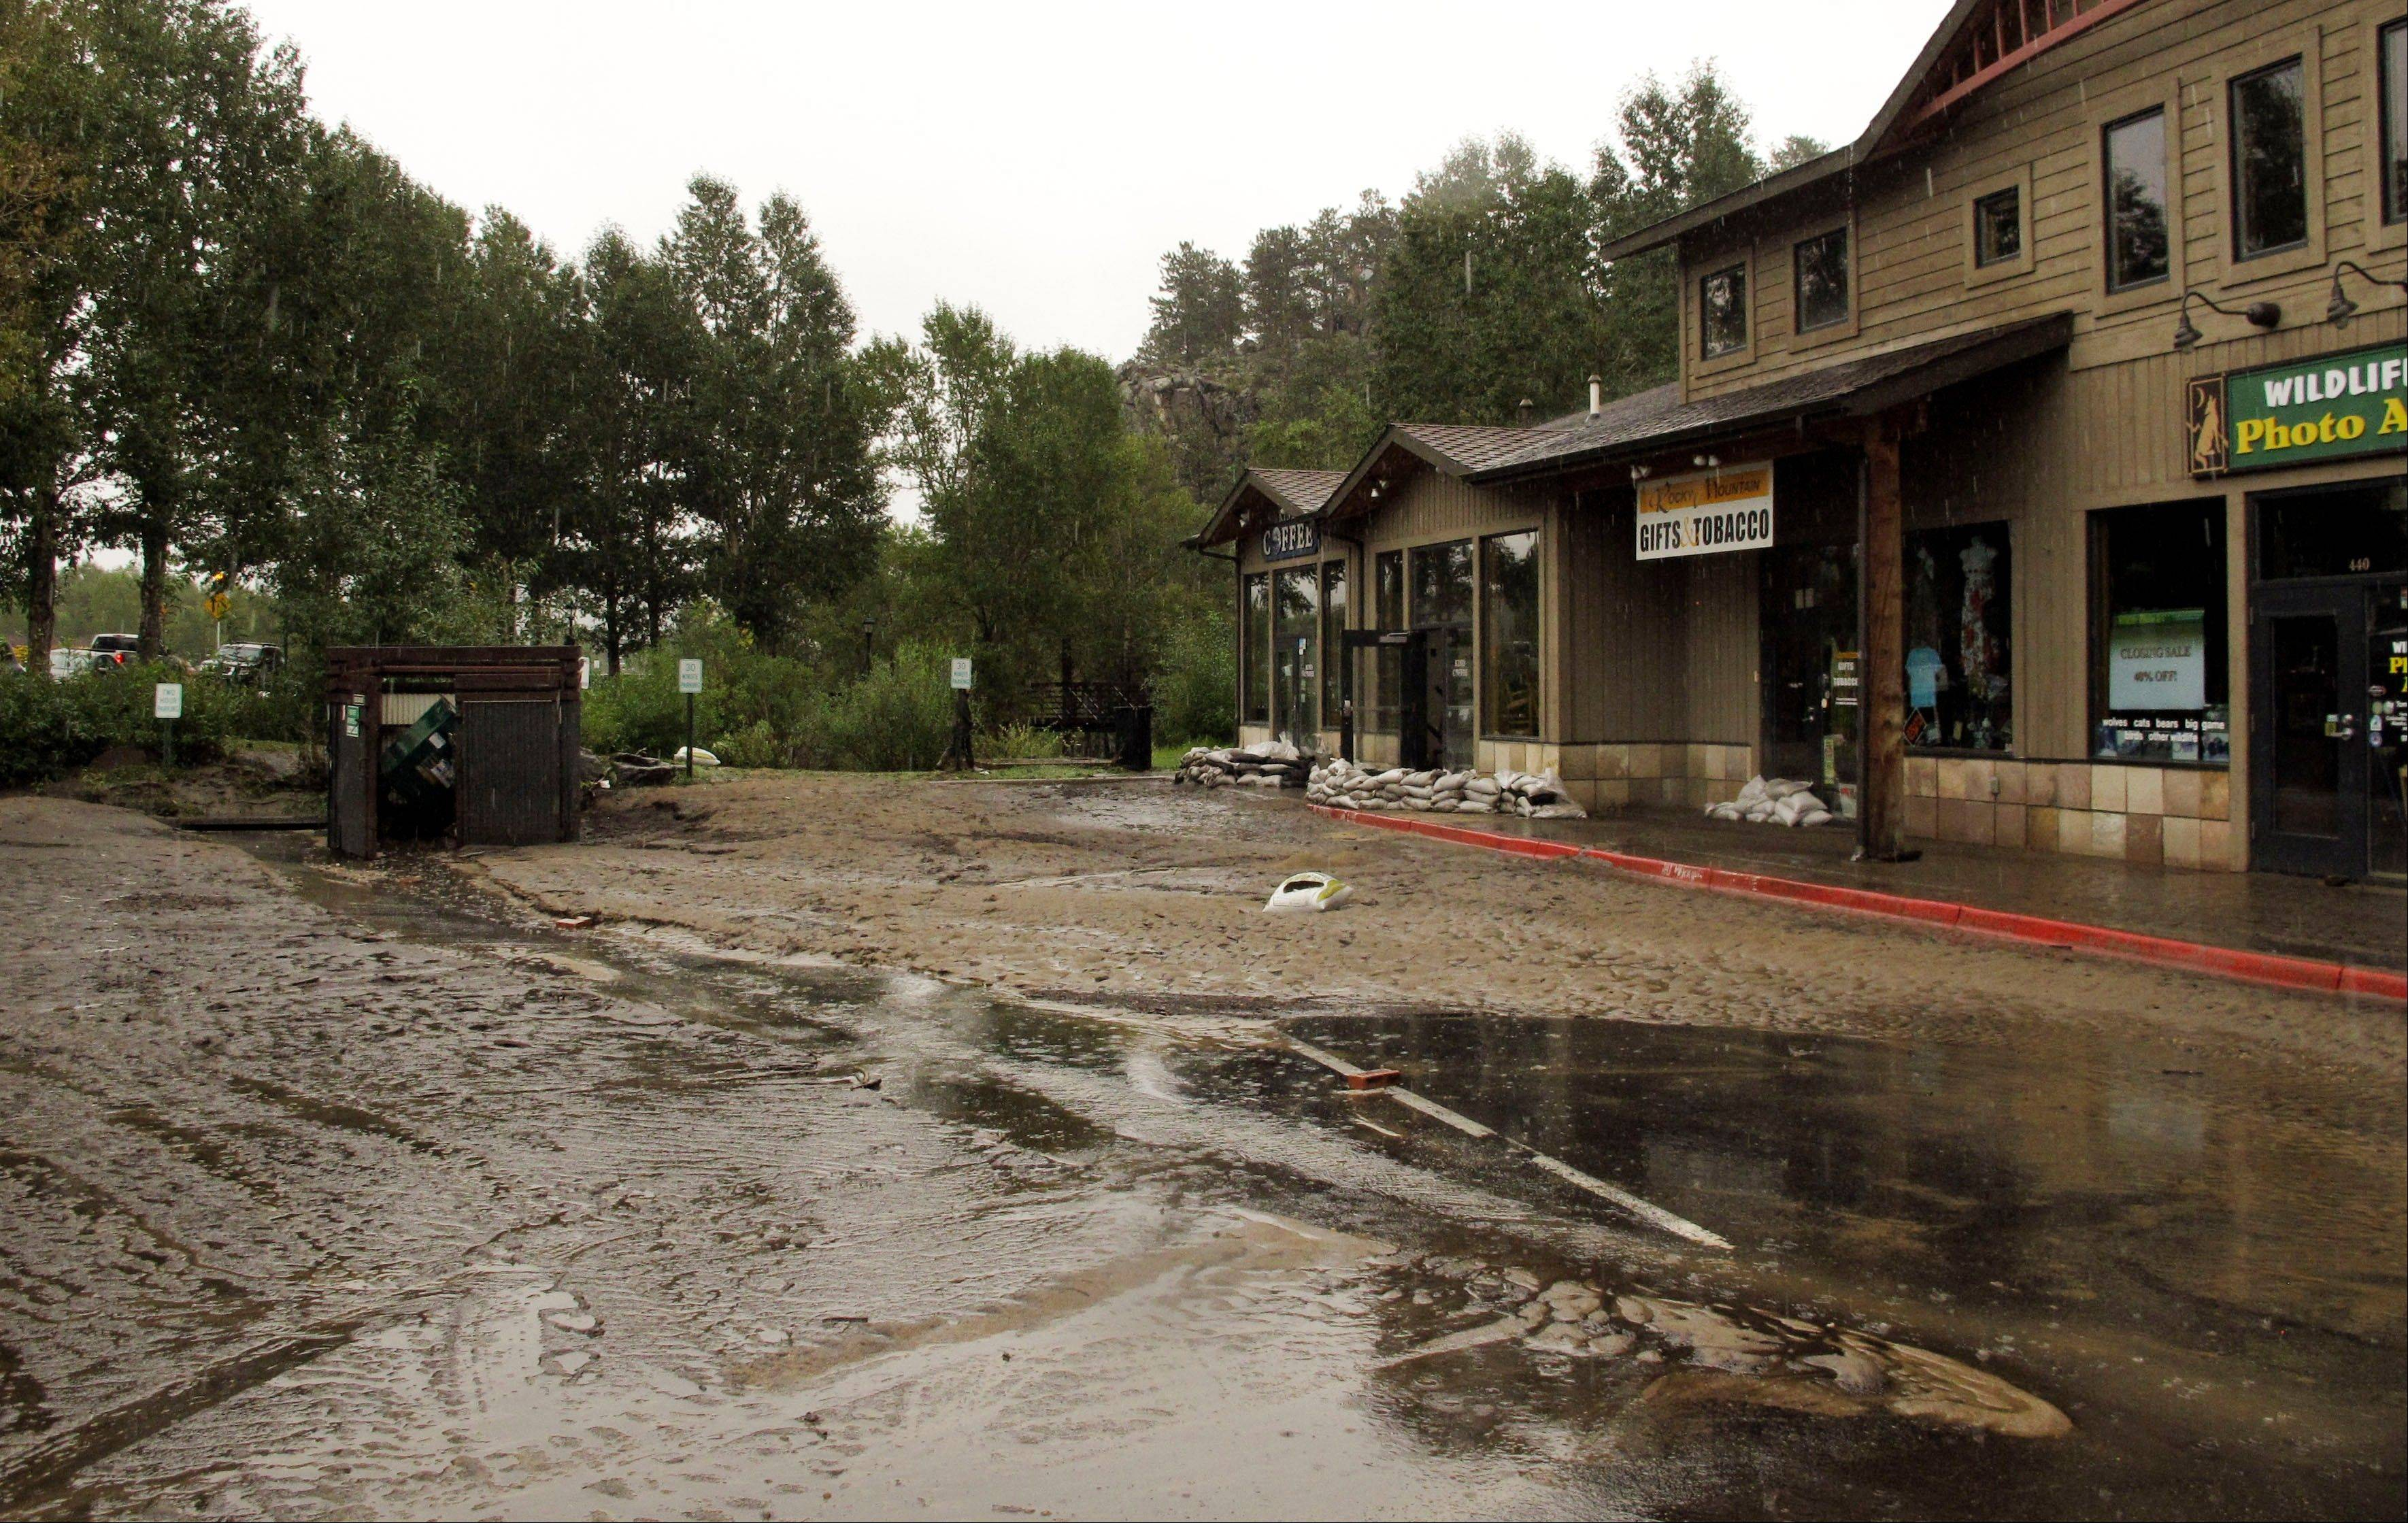 Mud from flooding is shown covering the main street in Estes Park, Colo., Sunday after water and debris swamped the town when the Big Thompson River surged through Estes Park late Thursday and early Friday.